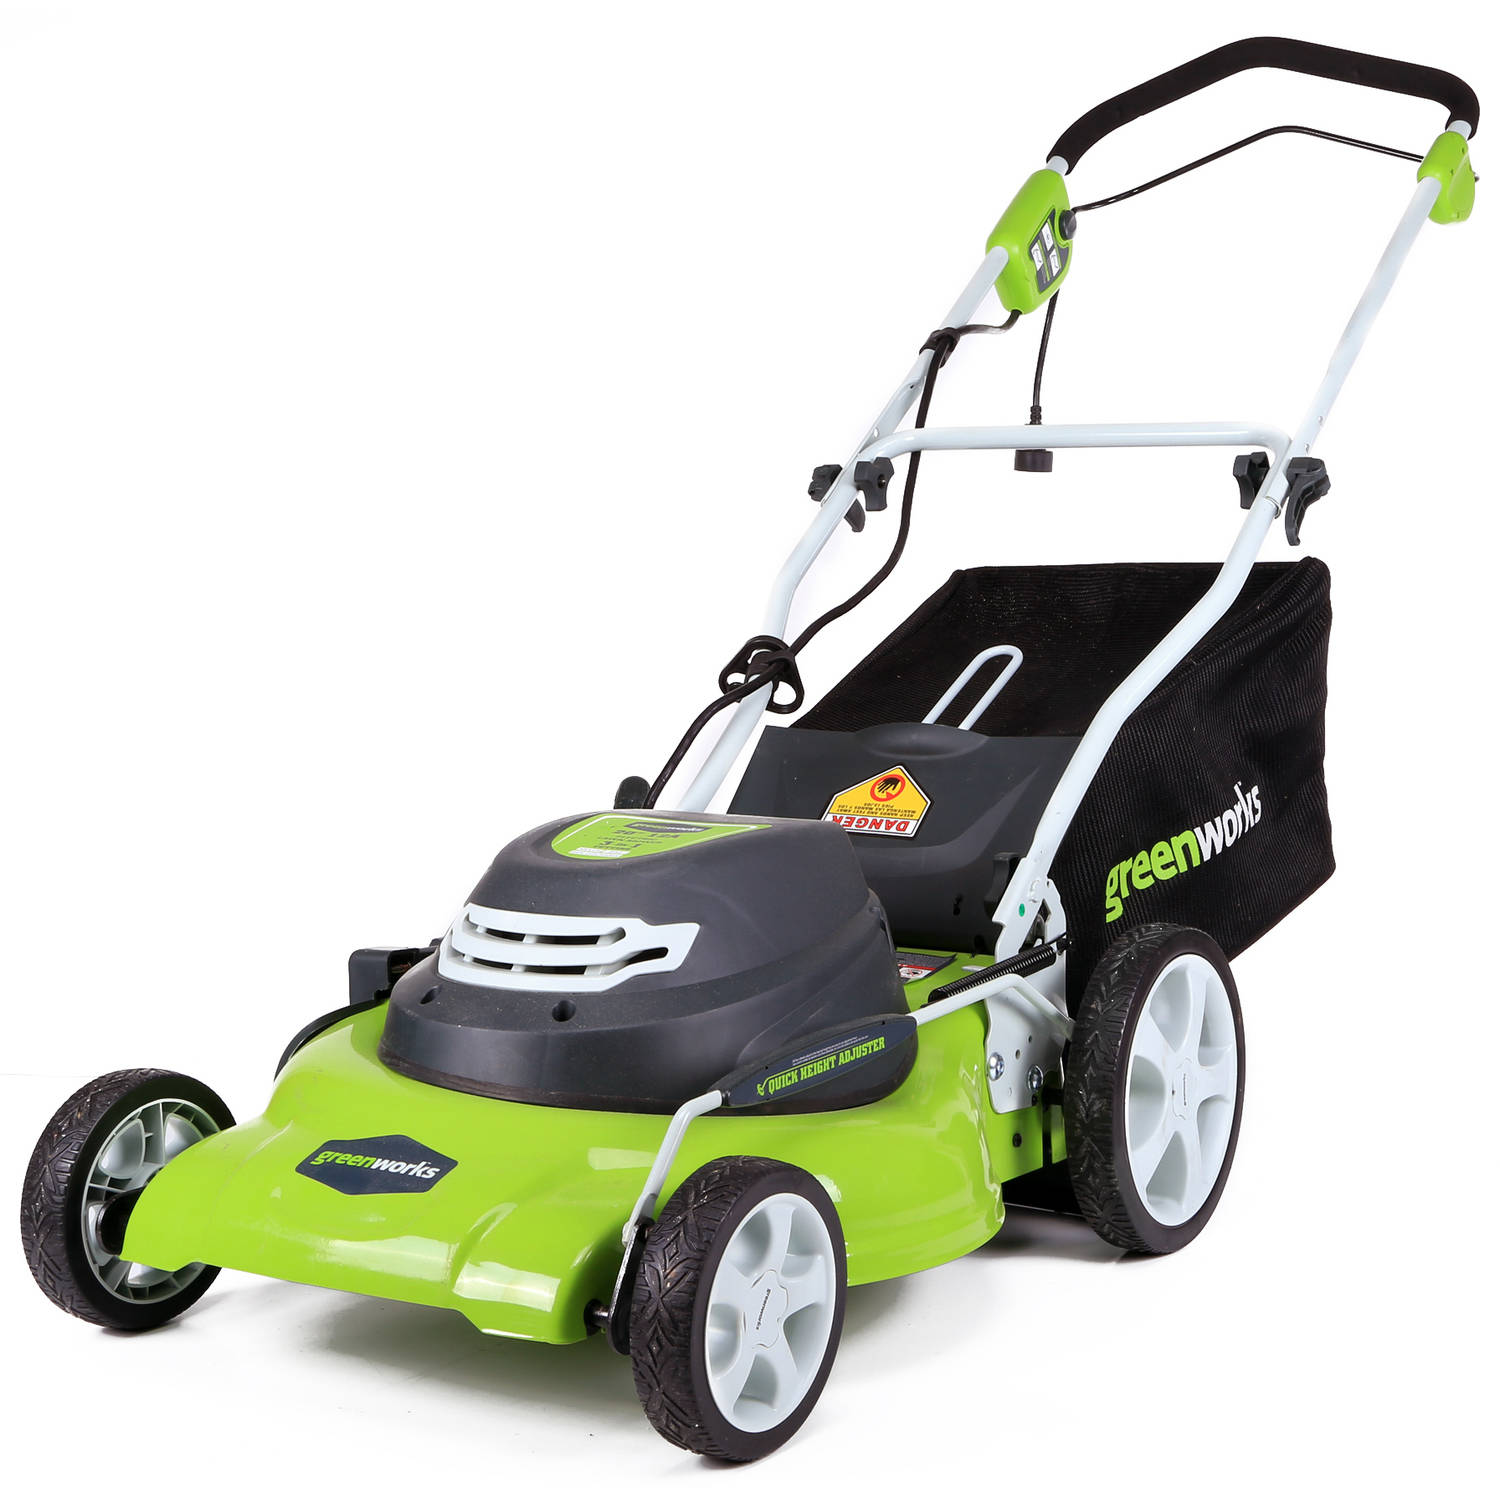 "GreenWorks 25022 12 Amp Corded 20"" Mower"